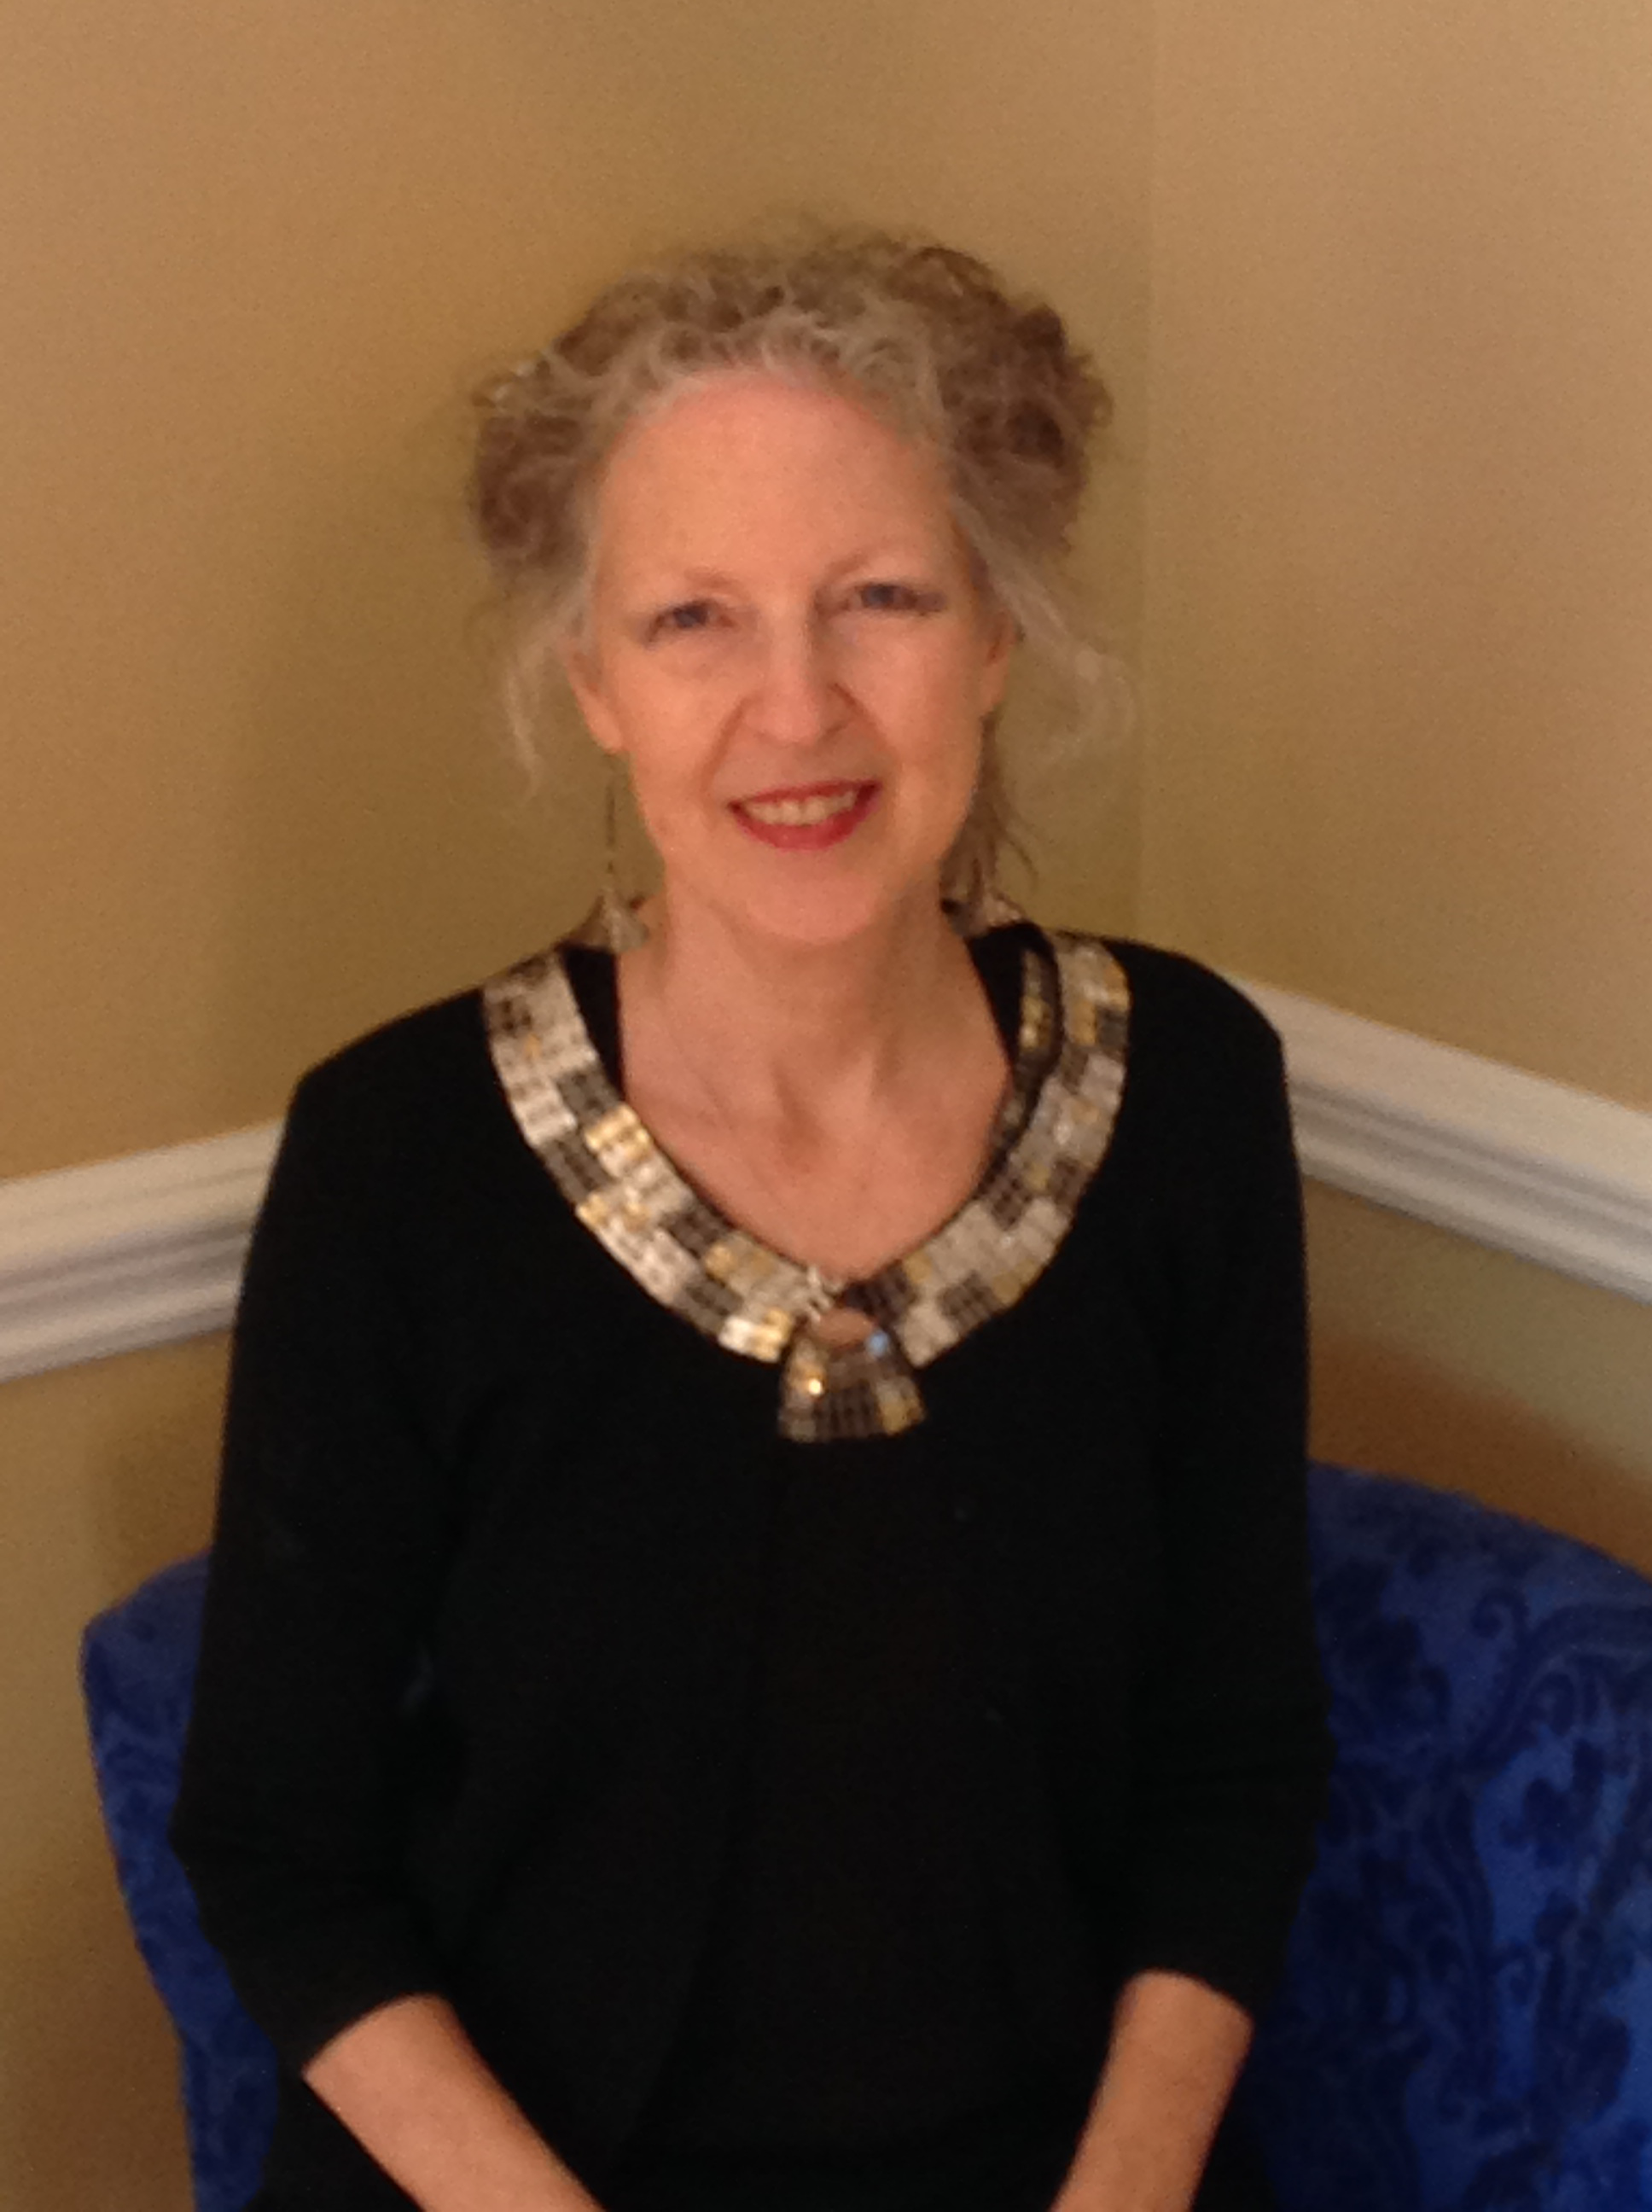 Marguerite Elkins, MS, LMFT, SAP - Marguerite Elkins, currently holds an MS in counseling from Carson-Newman College, is licensed by the state of Tennessee as a marriage and family therapist and is a substance abuse professional. She is trained in EDMR and specializes in trauma therapy.